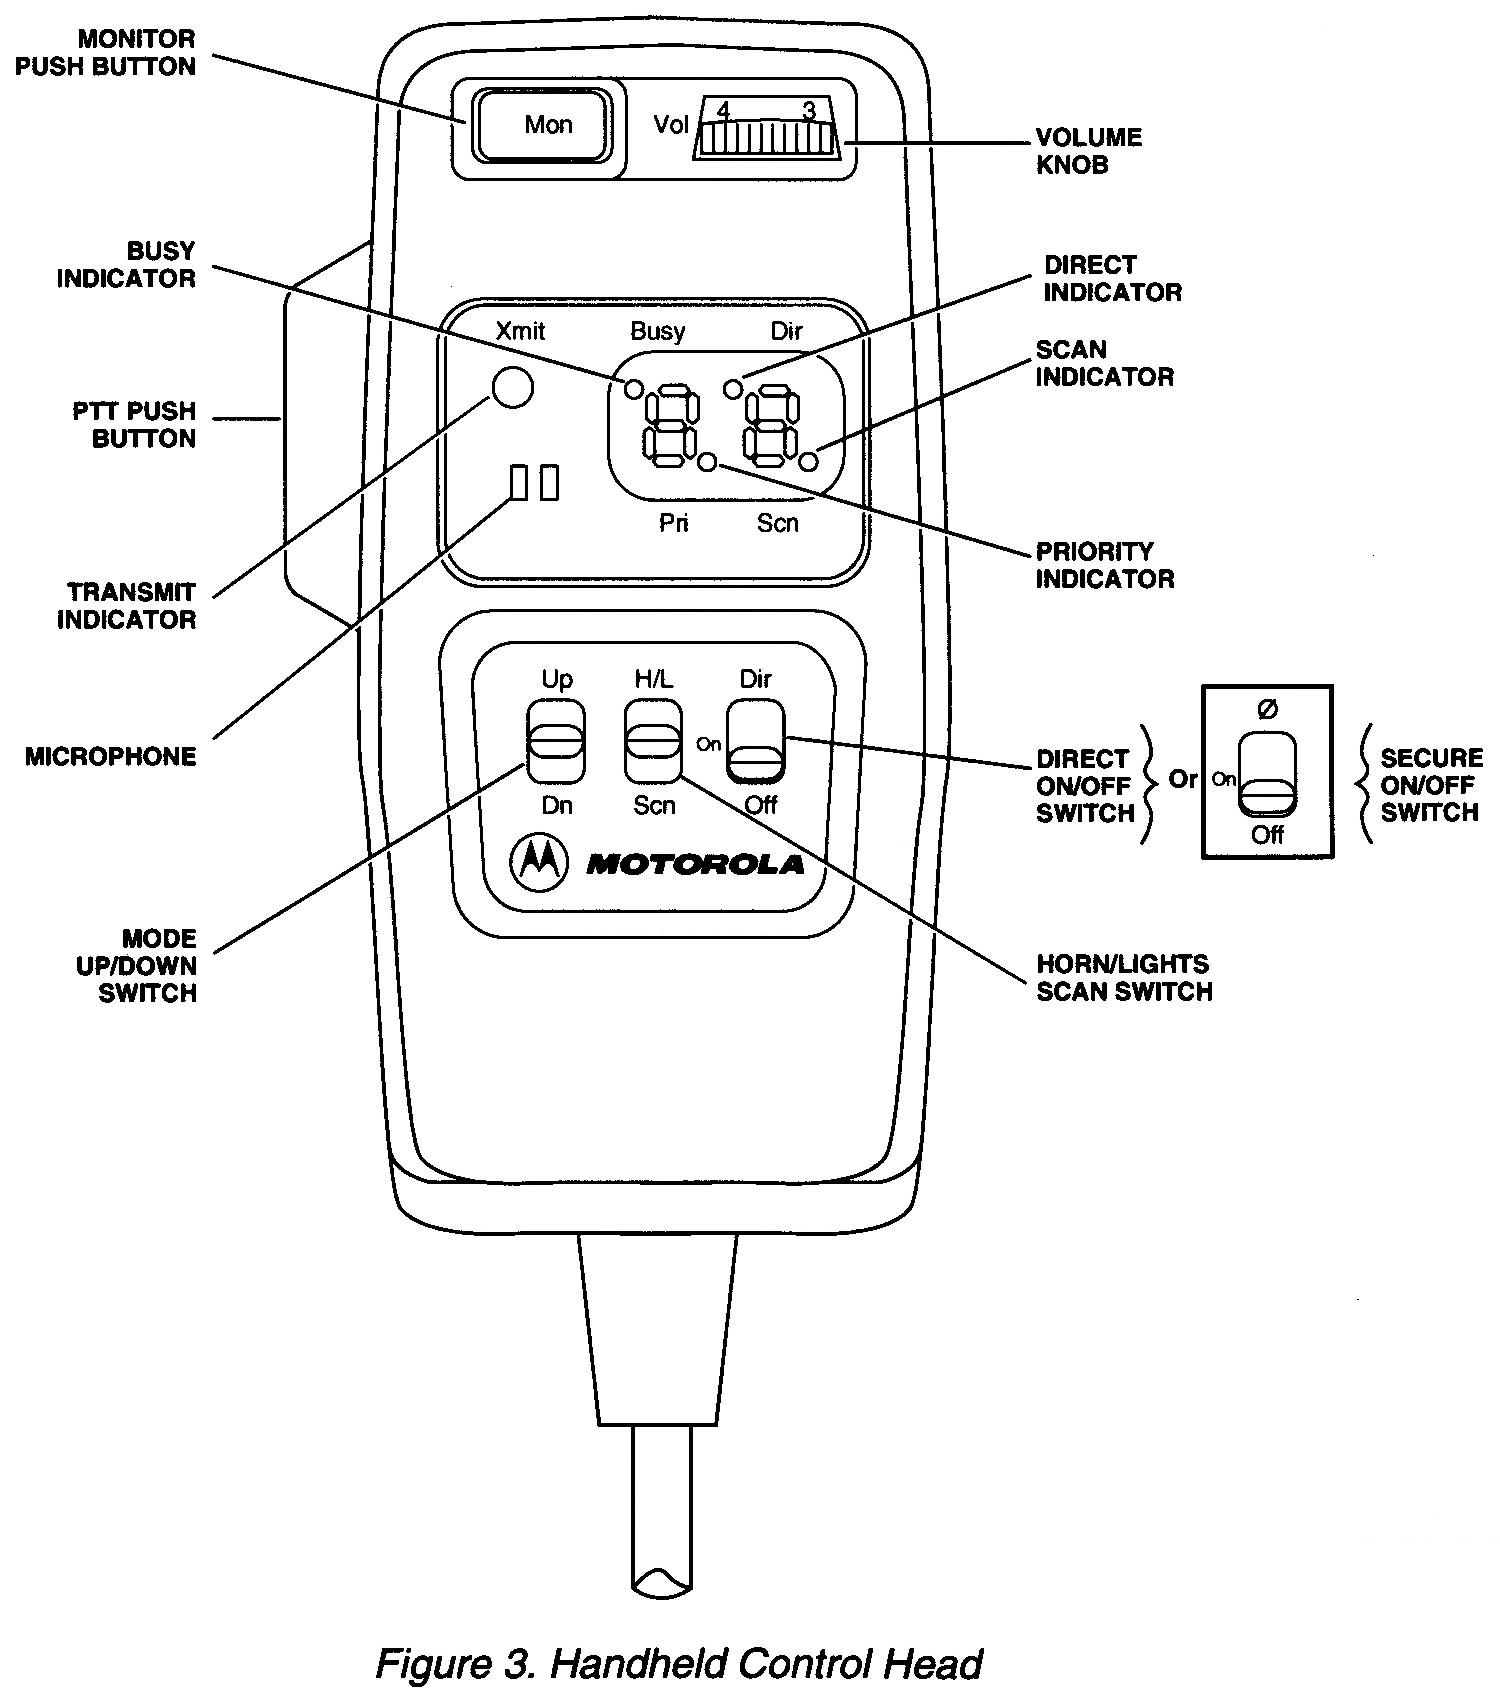 Motorola Xtl 2500 Wiring Diagram Verizon FiOS Connection